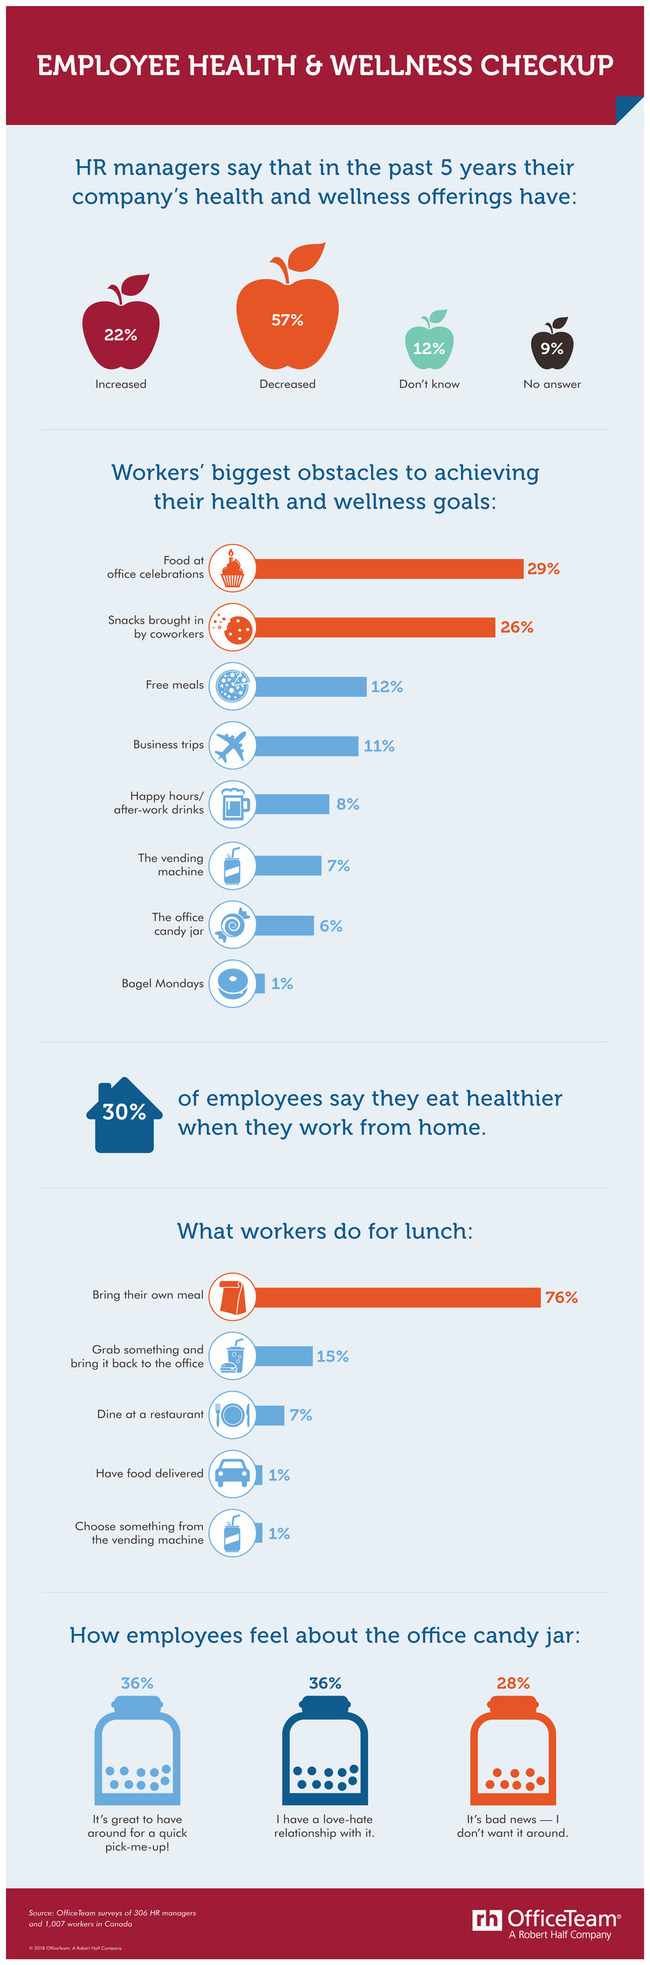 Don't overlook health and wellness programs for workers. (CNW Group/OfficeTeam)